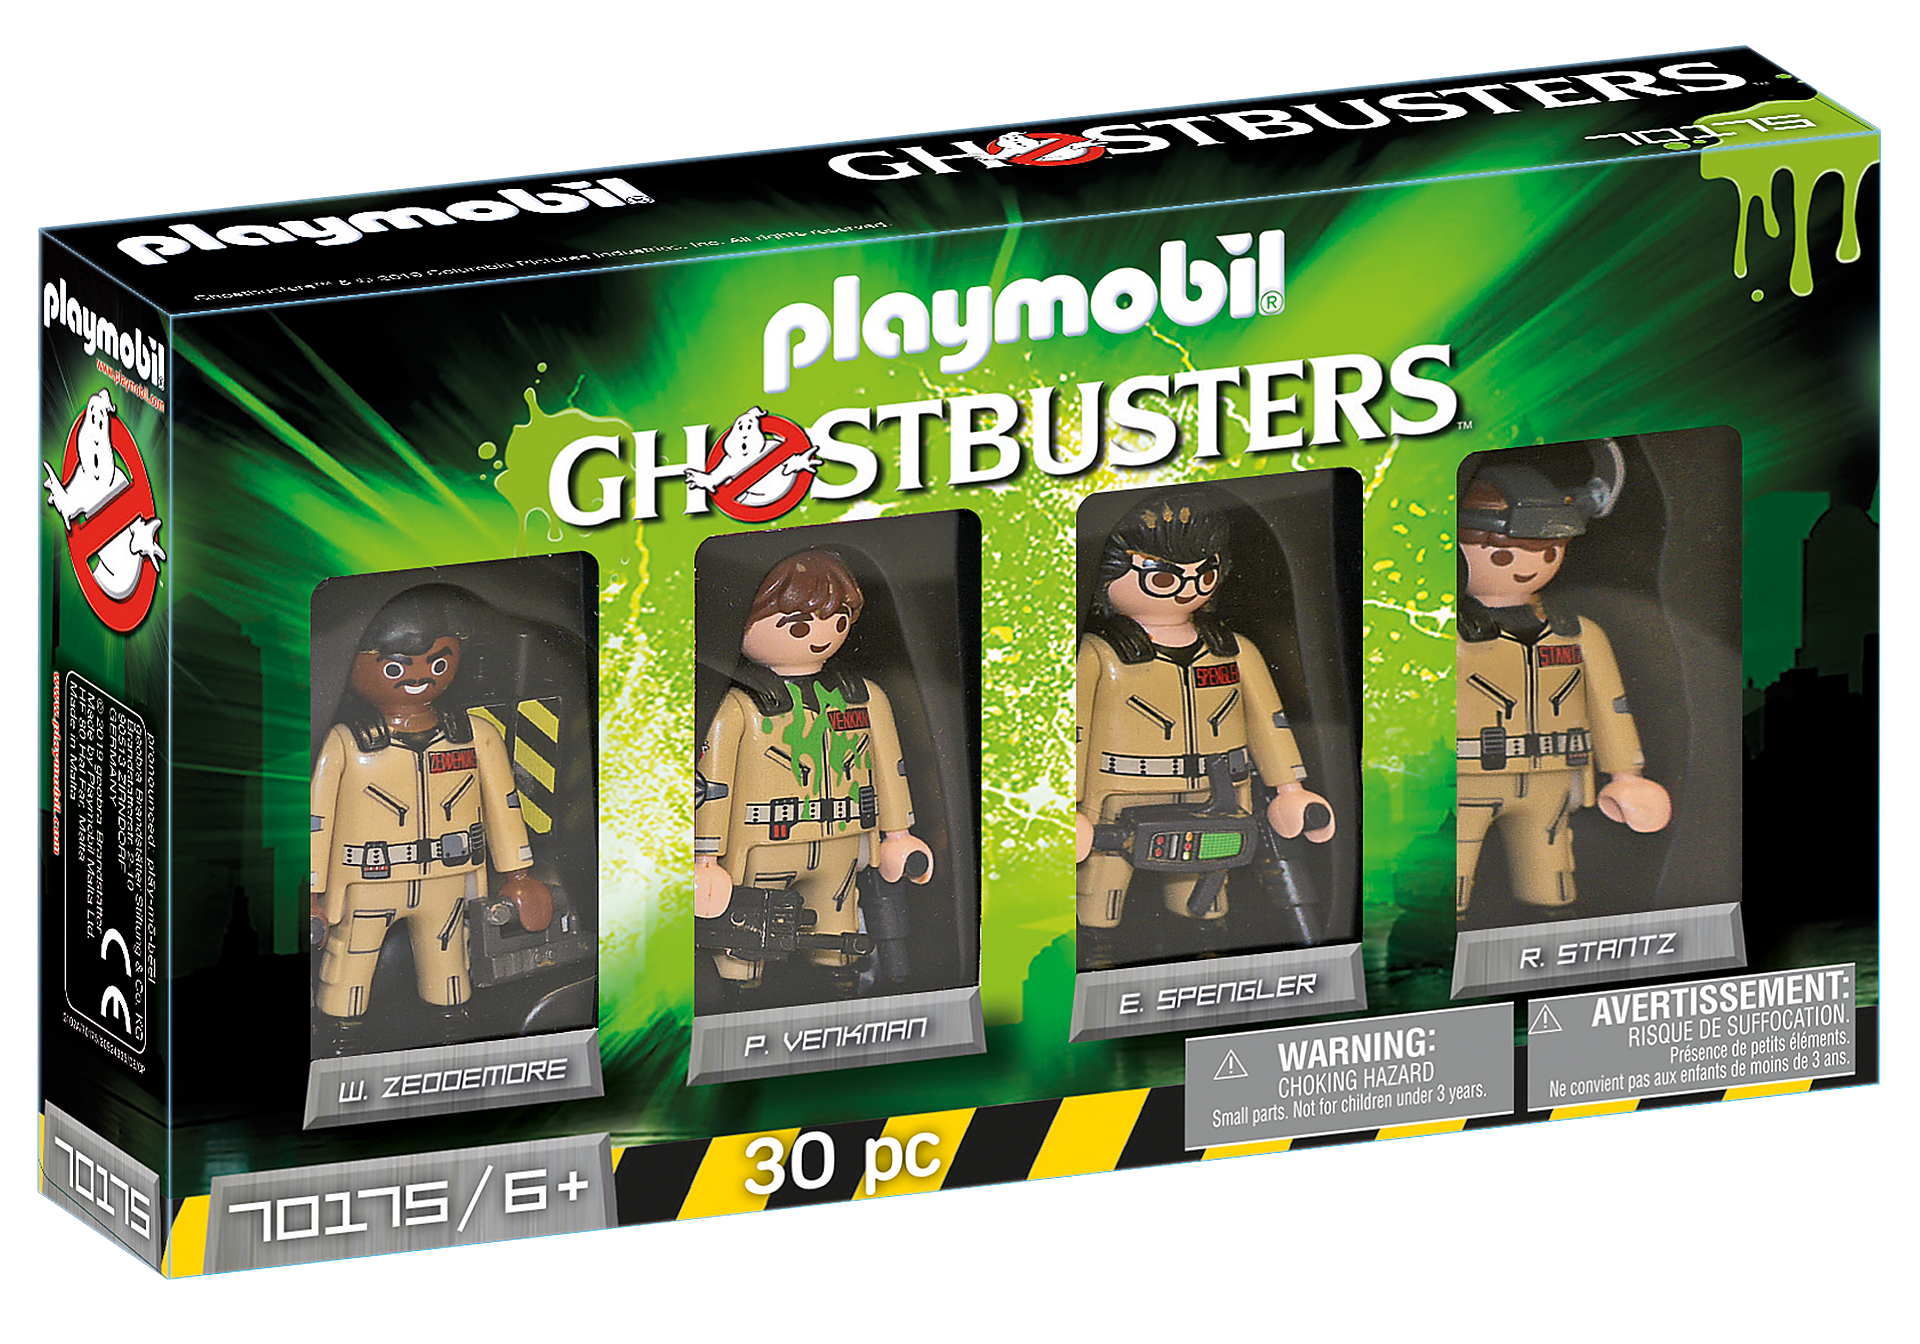 http://media.playmobil.com/i/playmobil/70175_product_box_front/Ghostbusters™ Figures Set Ghostbusters™